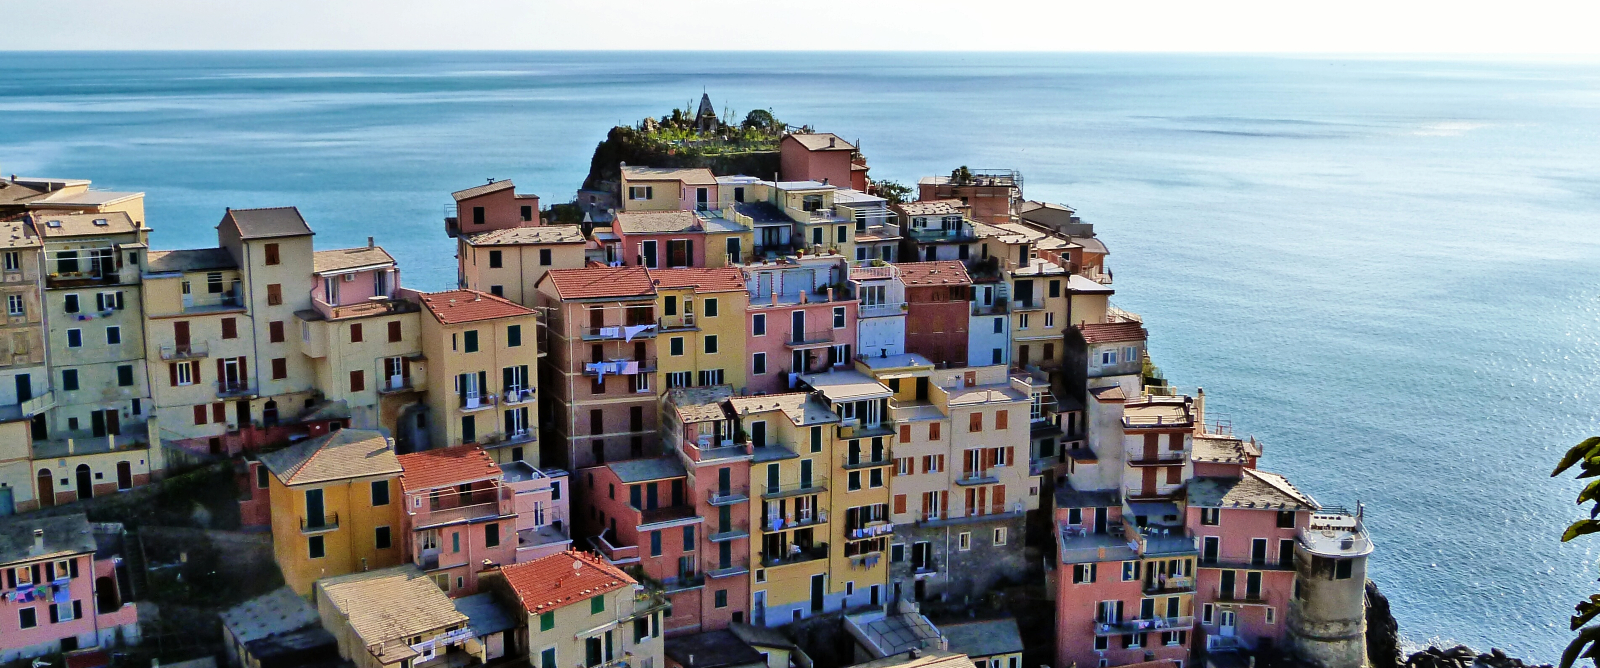 10 best things to do in the Italian Riviera